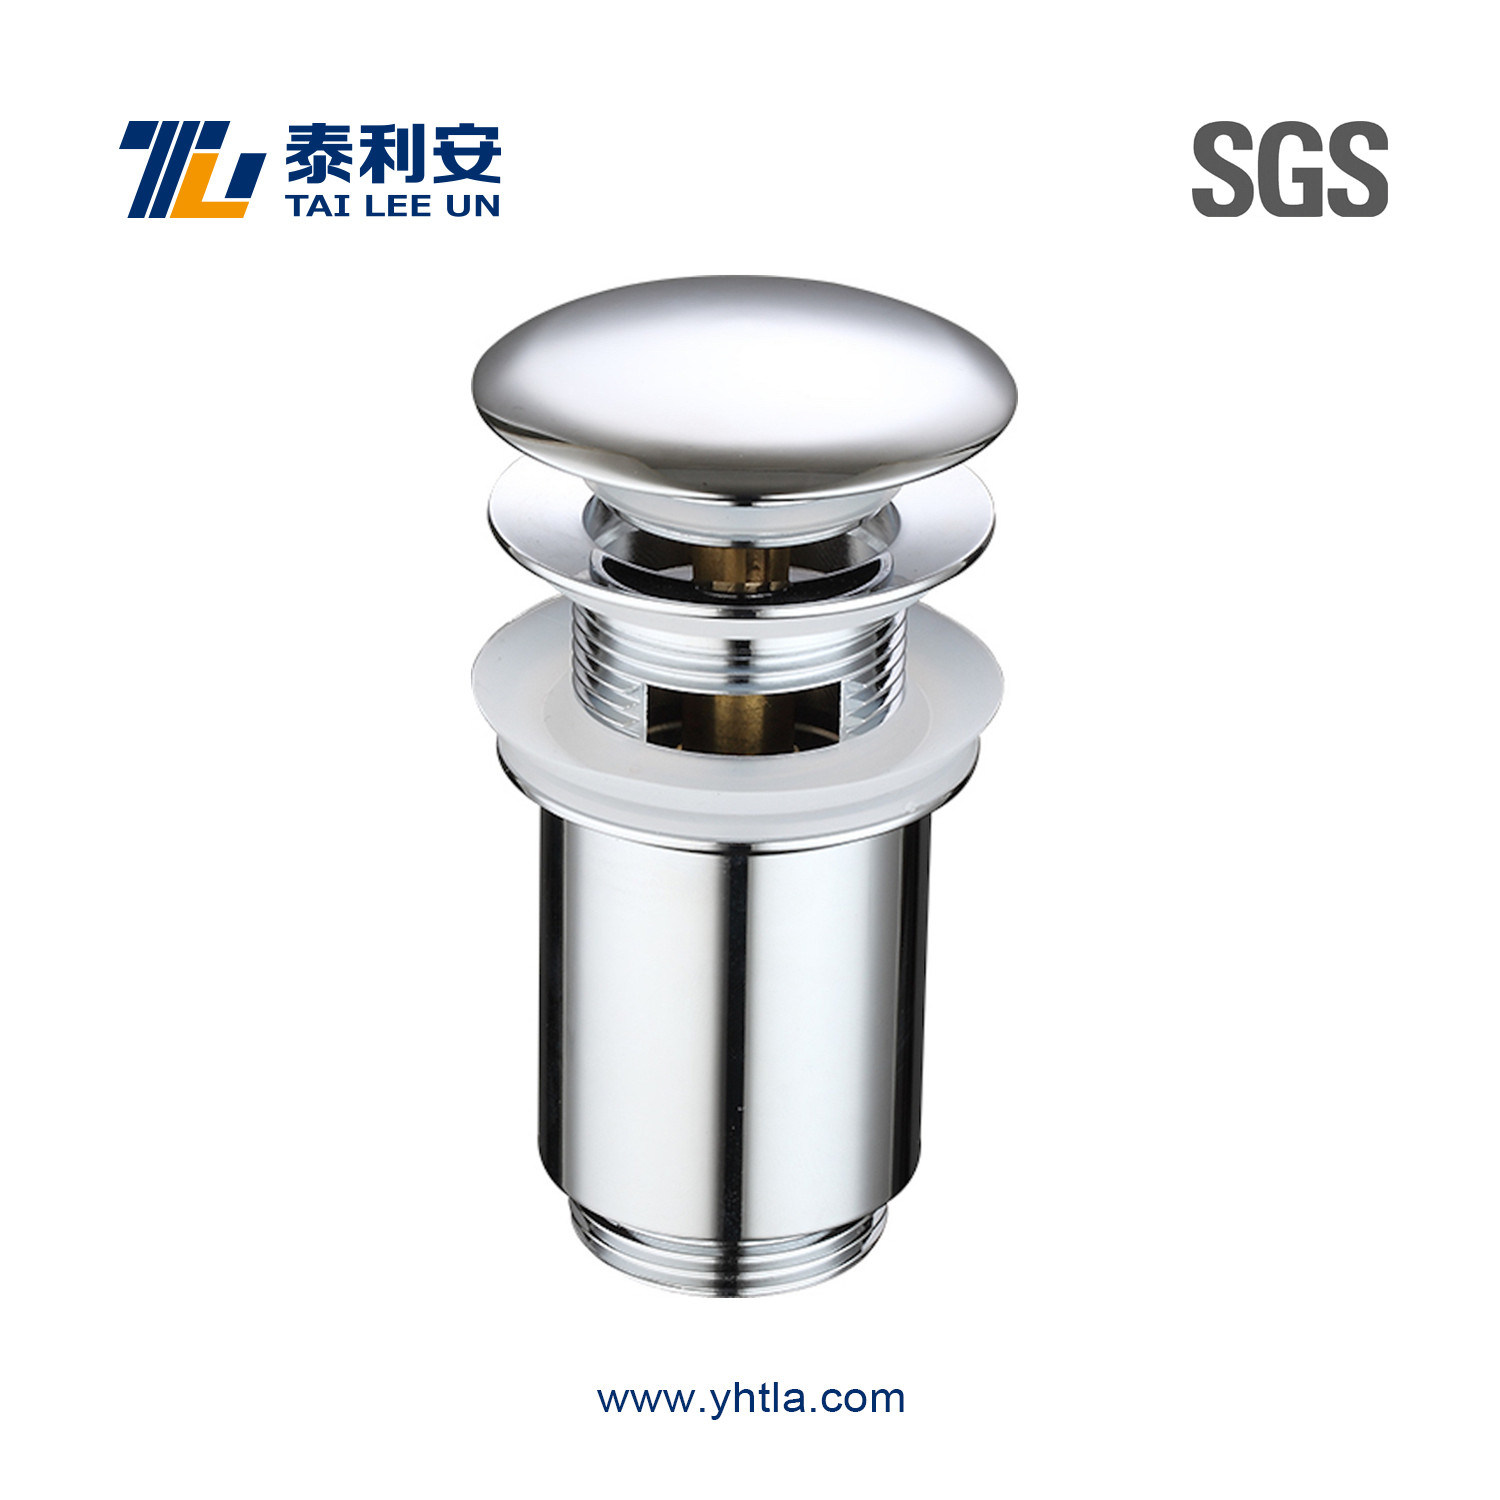 New Arrival Pop up Waste Coupling with Overflow (T1001)